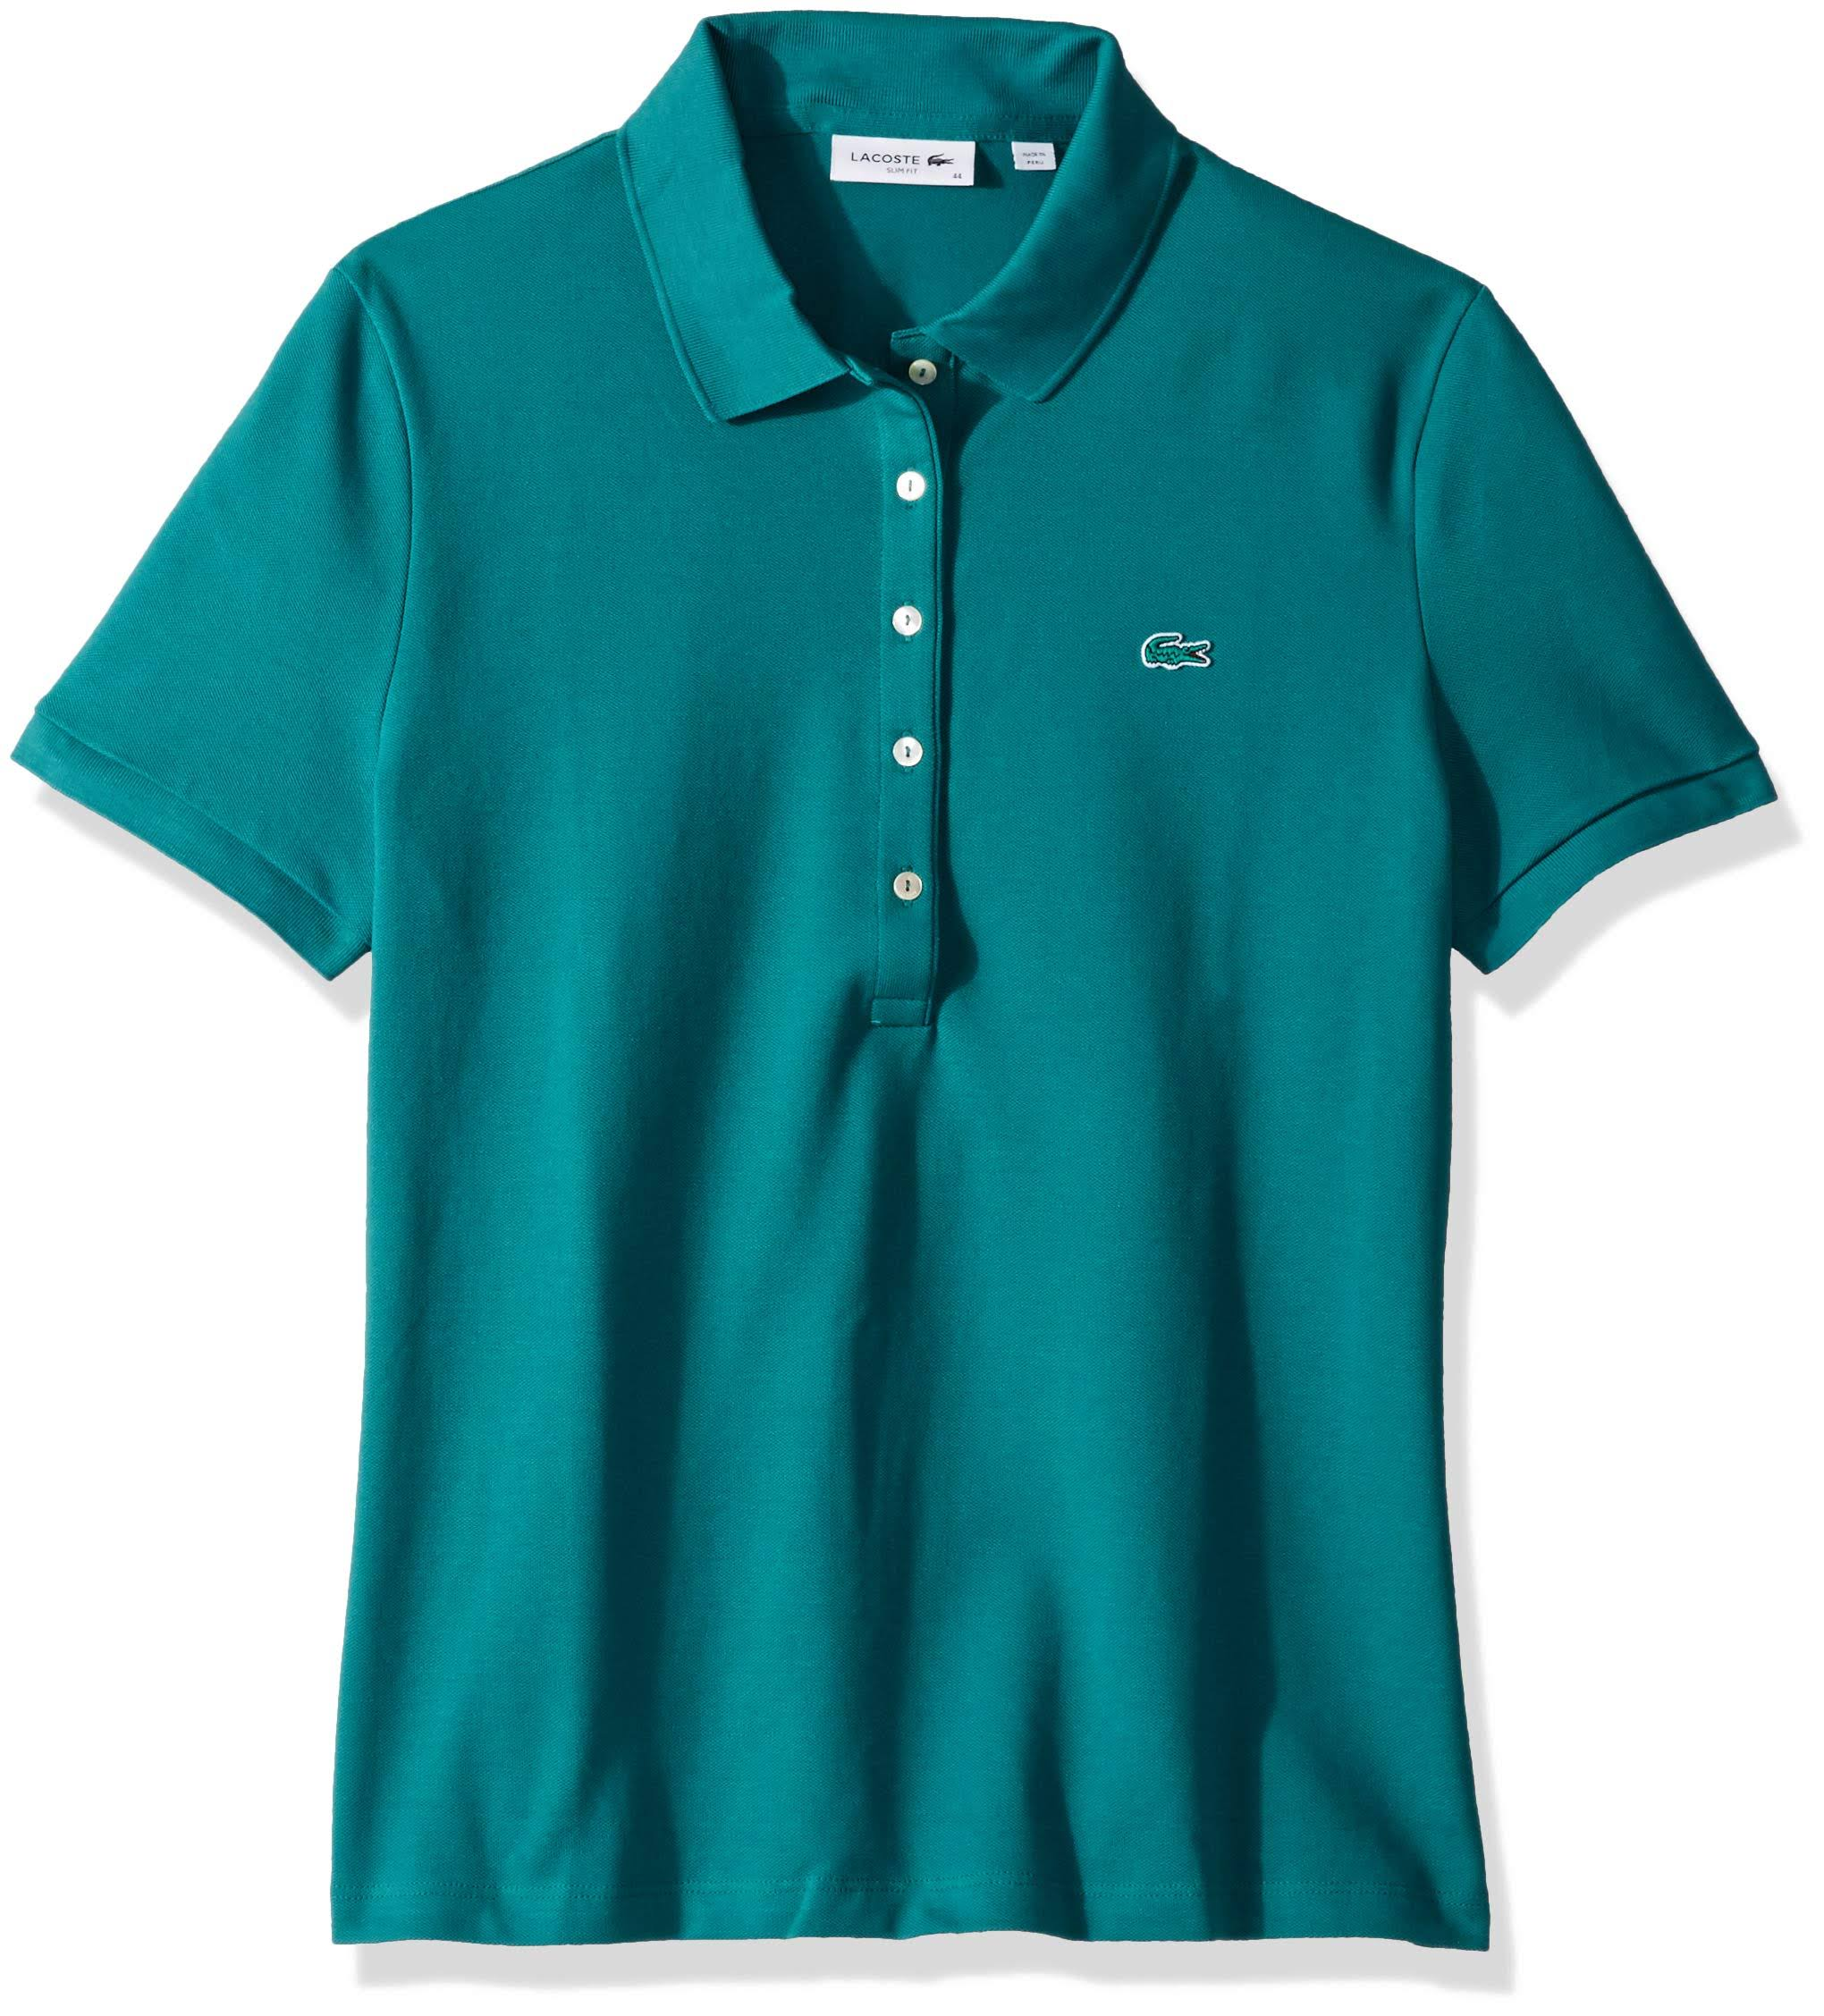 Mini Verde Cotton Lacoste Slim Stretch Polo Piqué Fit tzxwZqA